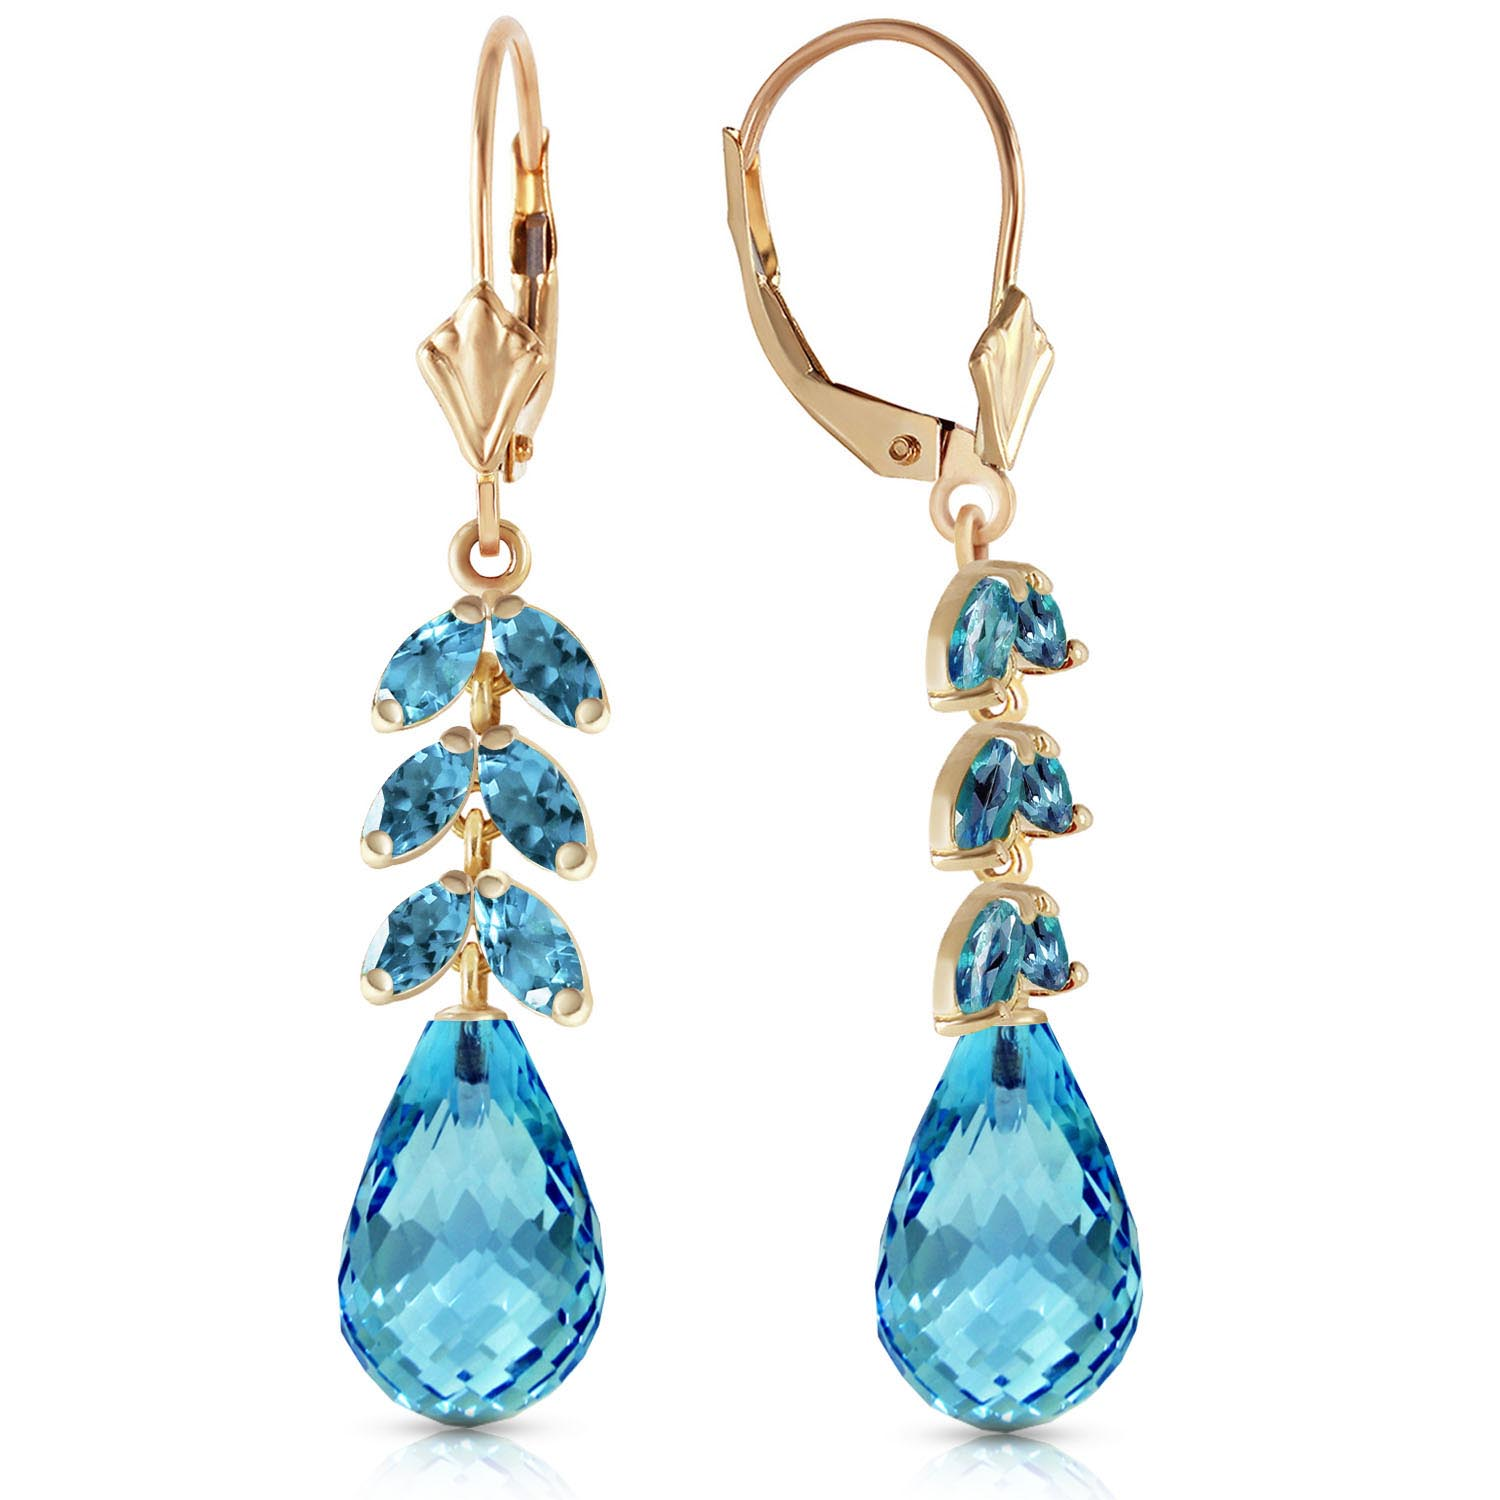 Blue Topaz Drop Earrings 11.2 ctw in 9ct Gold